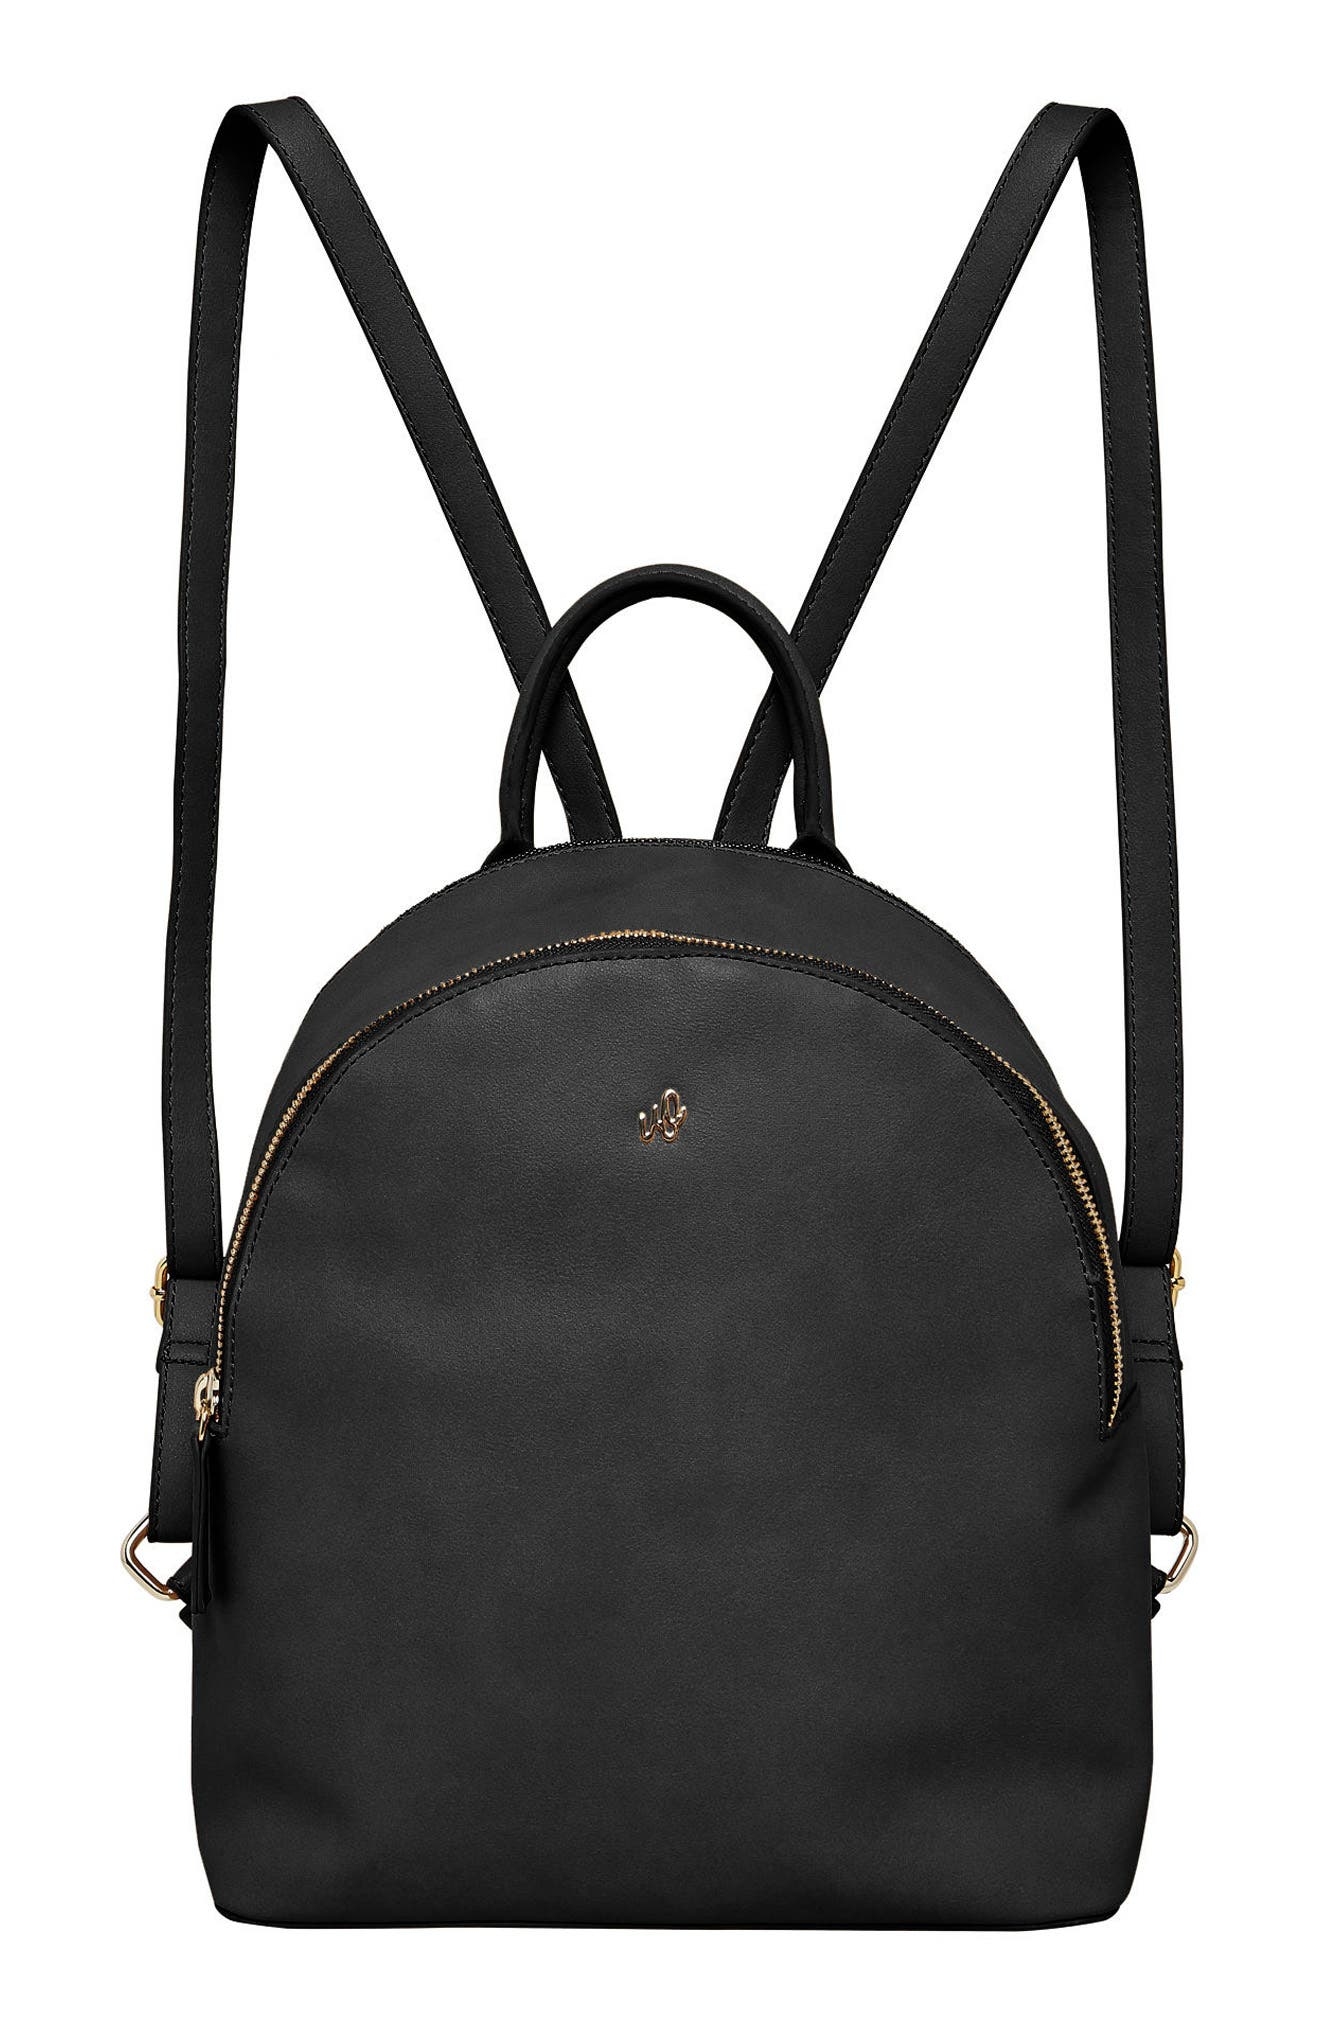 Magic Vegan Leather Backpack,                             Main thumbnail 1, color,                             001